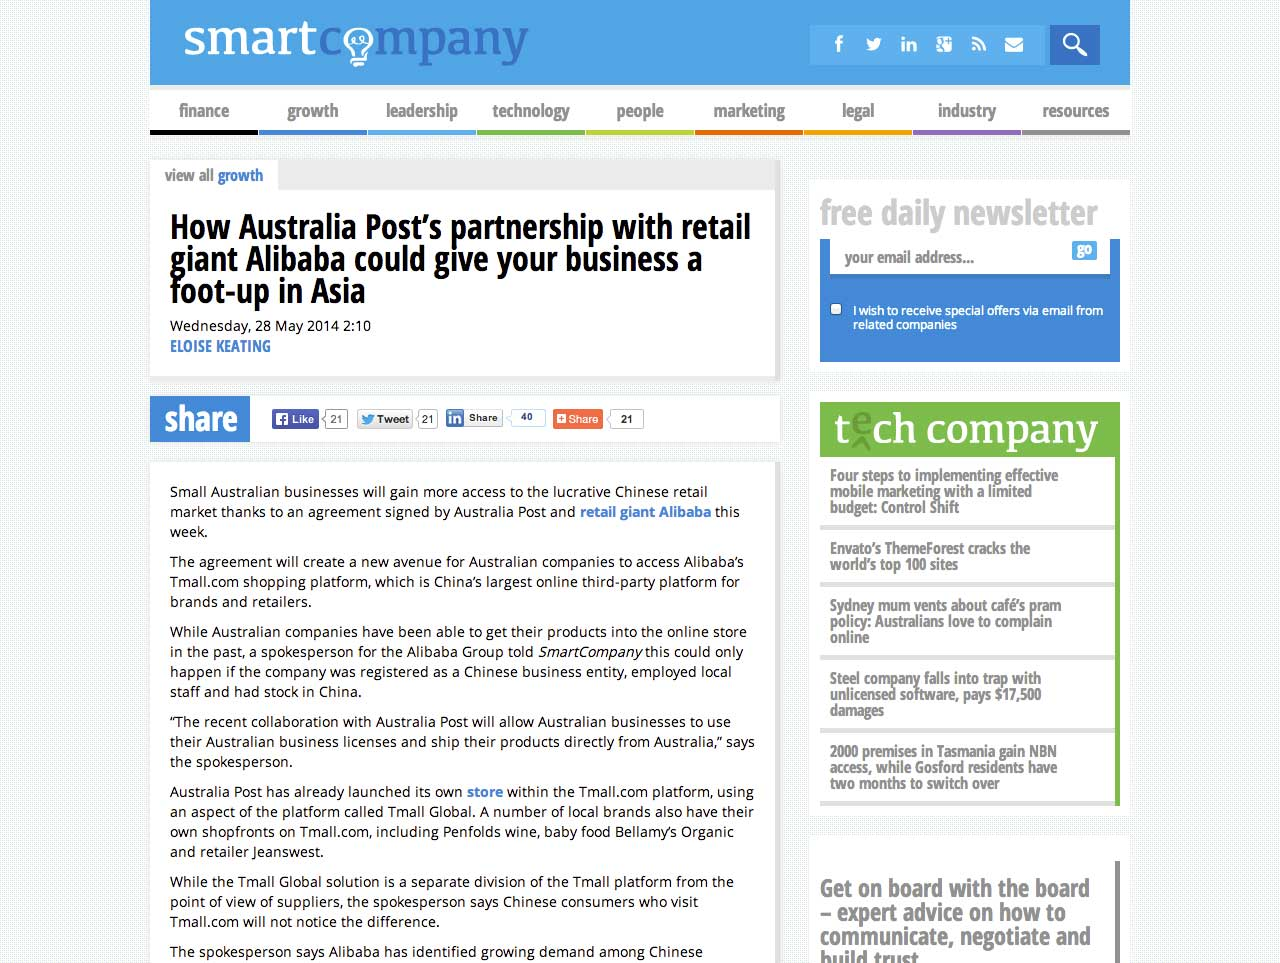 How Australia Post's partnership with retail giant Alibaba could give your business a foot-up in Asia